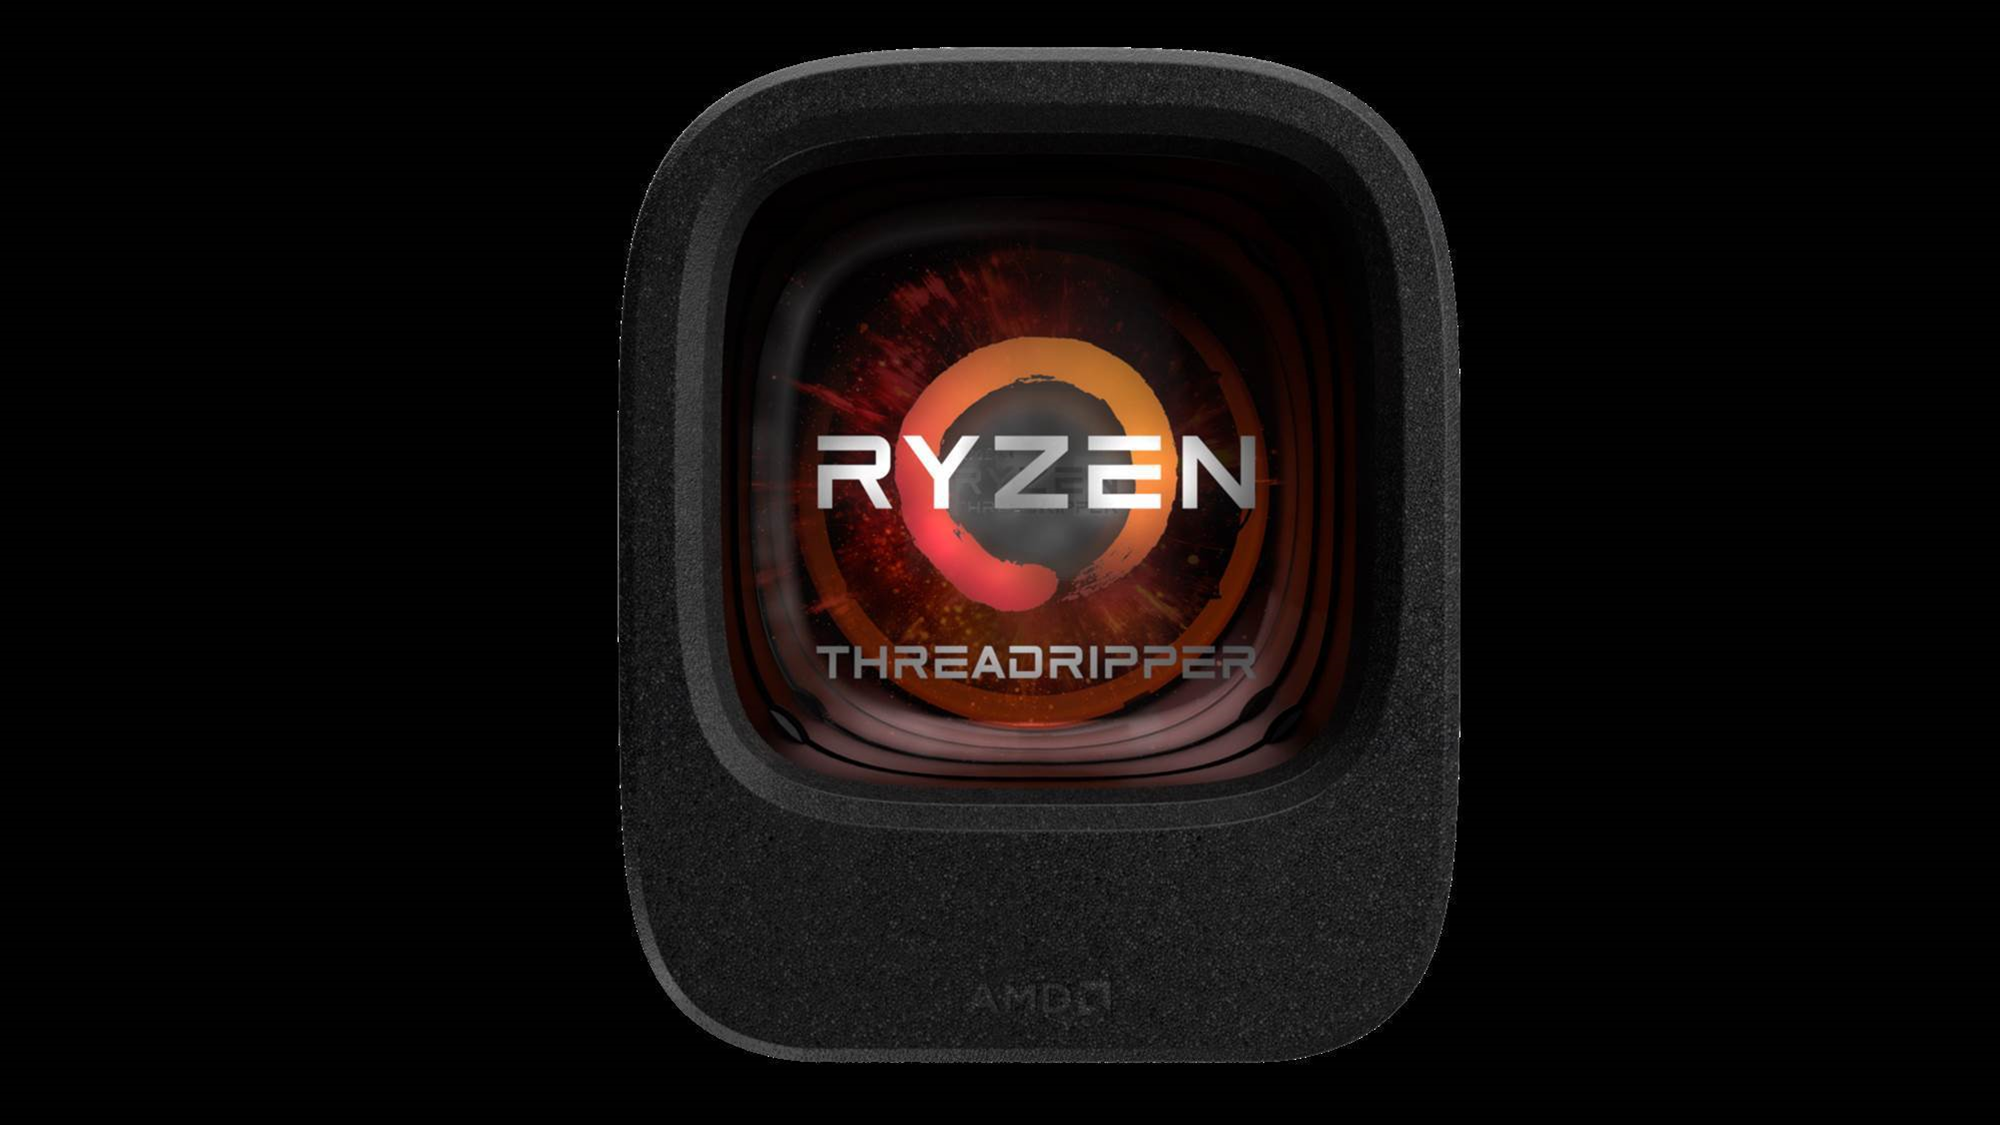 Threadripper officially launches, complete with Australian pricing